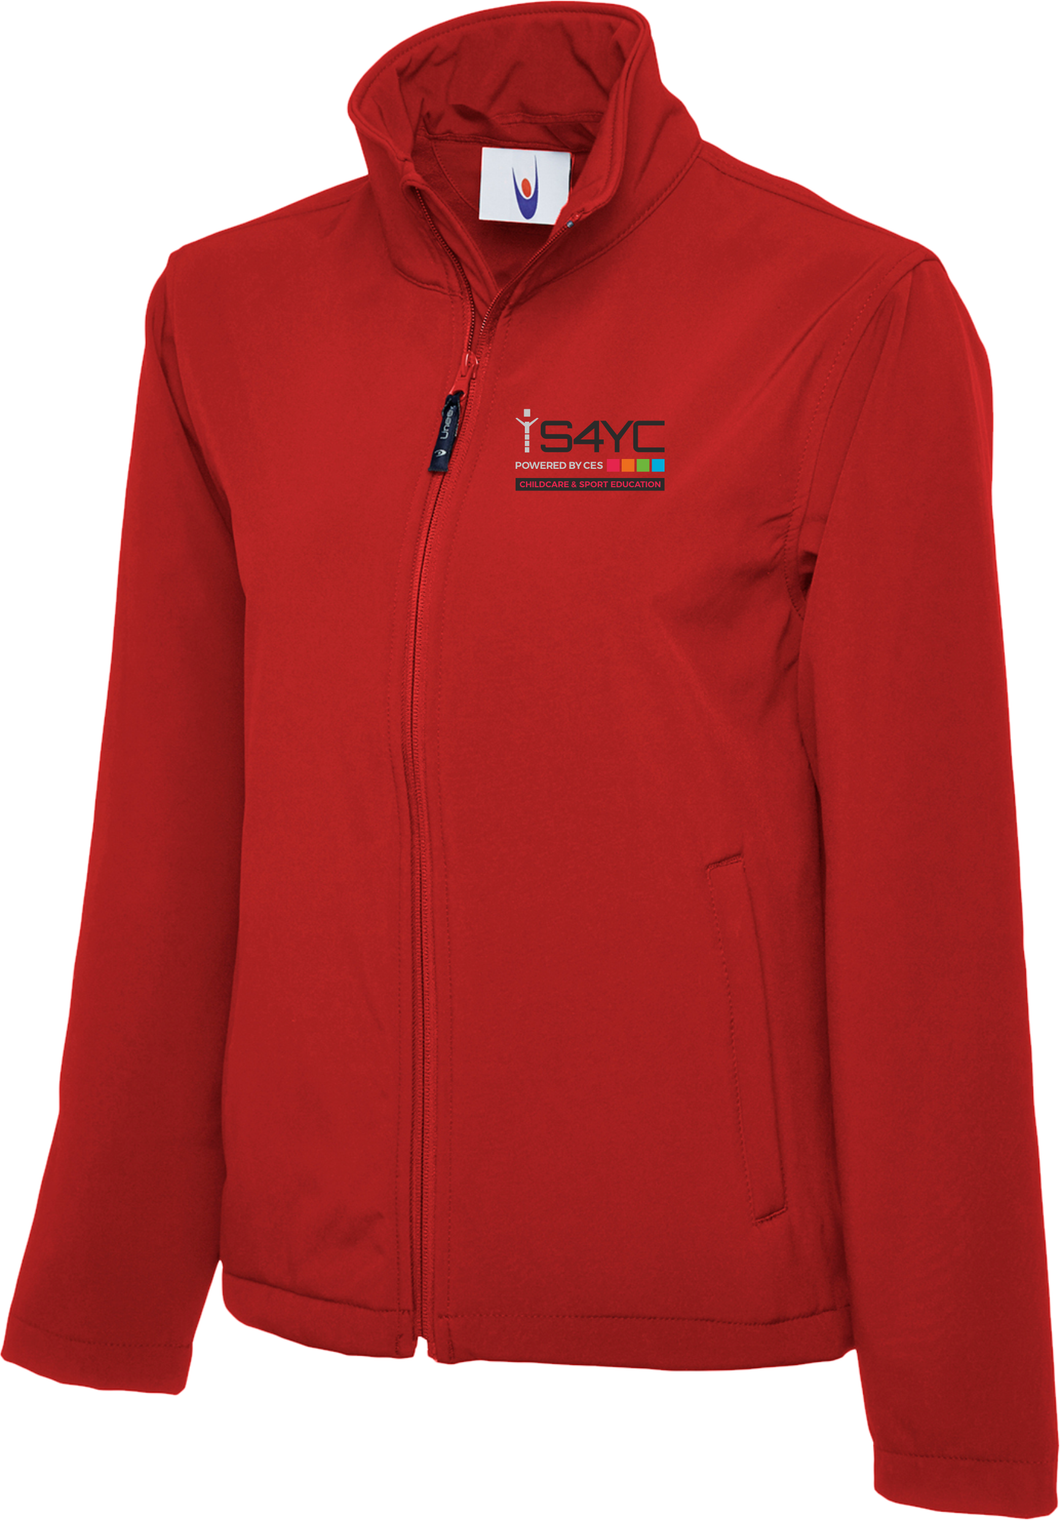 S4YC Female Staff Softshell Jacket